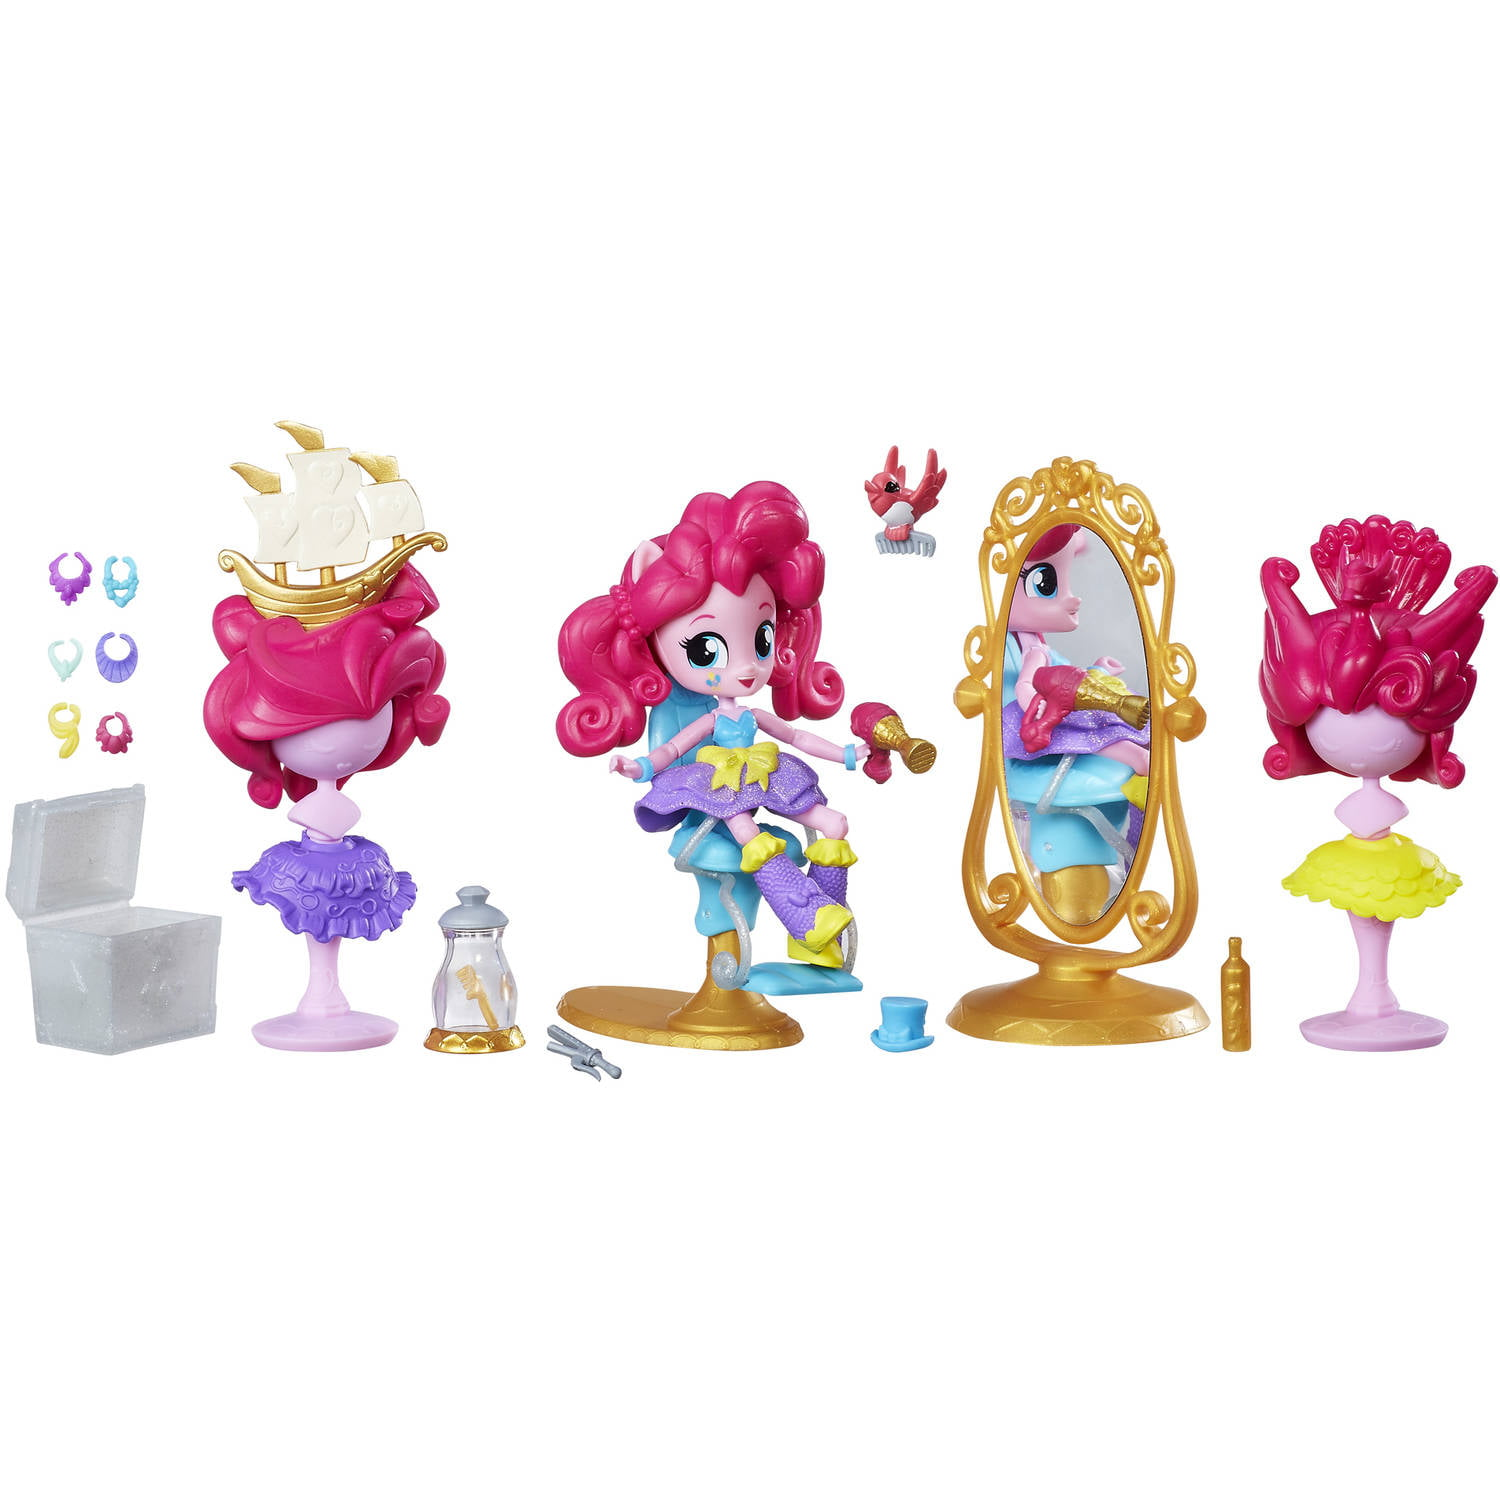 My Little Pony Equestria Girls Minis Pinkie Pie Switch-a-Do Salon Set by Hasbro